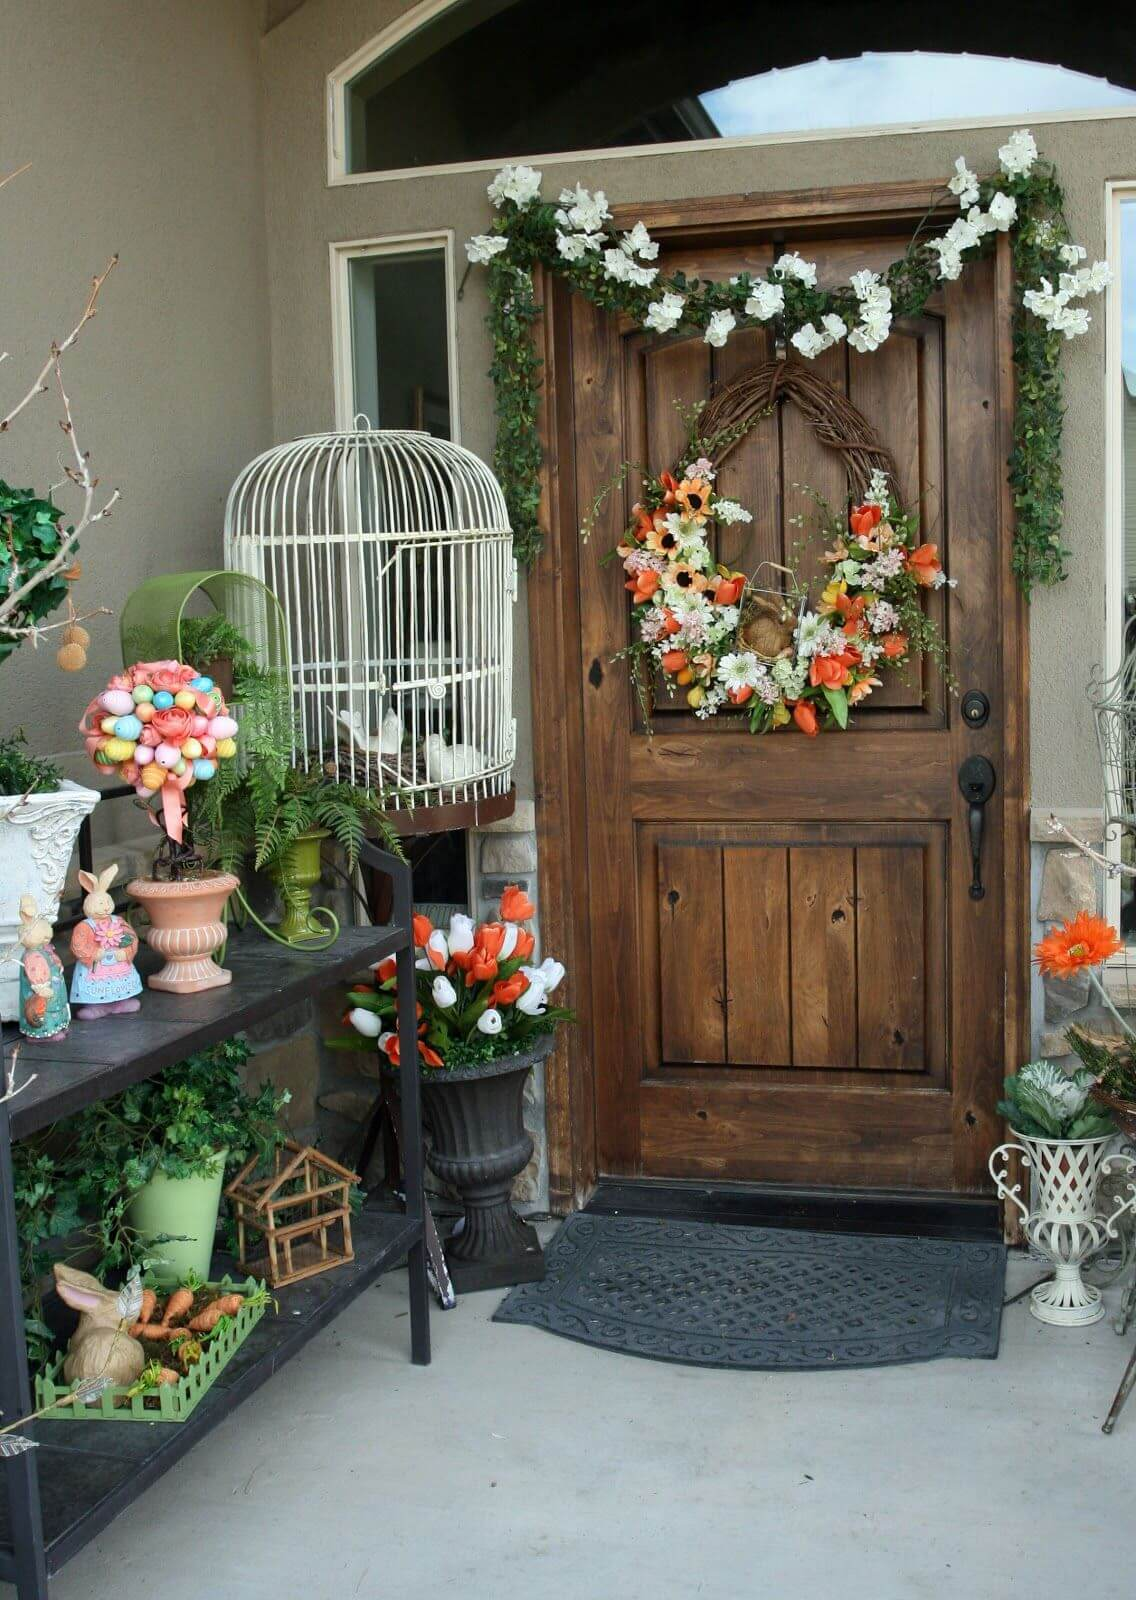 23 Best Easter Porch Decor Ideas And Designs For 2017. Basement Ideas Without Drywall. Lunch Ideas Melbourne. Vendor Display Ideas. Small Bathroom Design Floor Plans. Balcony Decorating Ideas For Halloween. Gender Reveal Appetizer Ideas. Kitchen Remodel Ideas 2014. Small Backyard Edible Garden